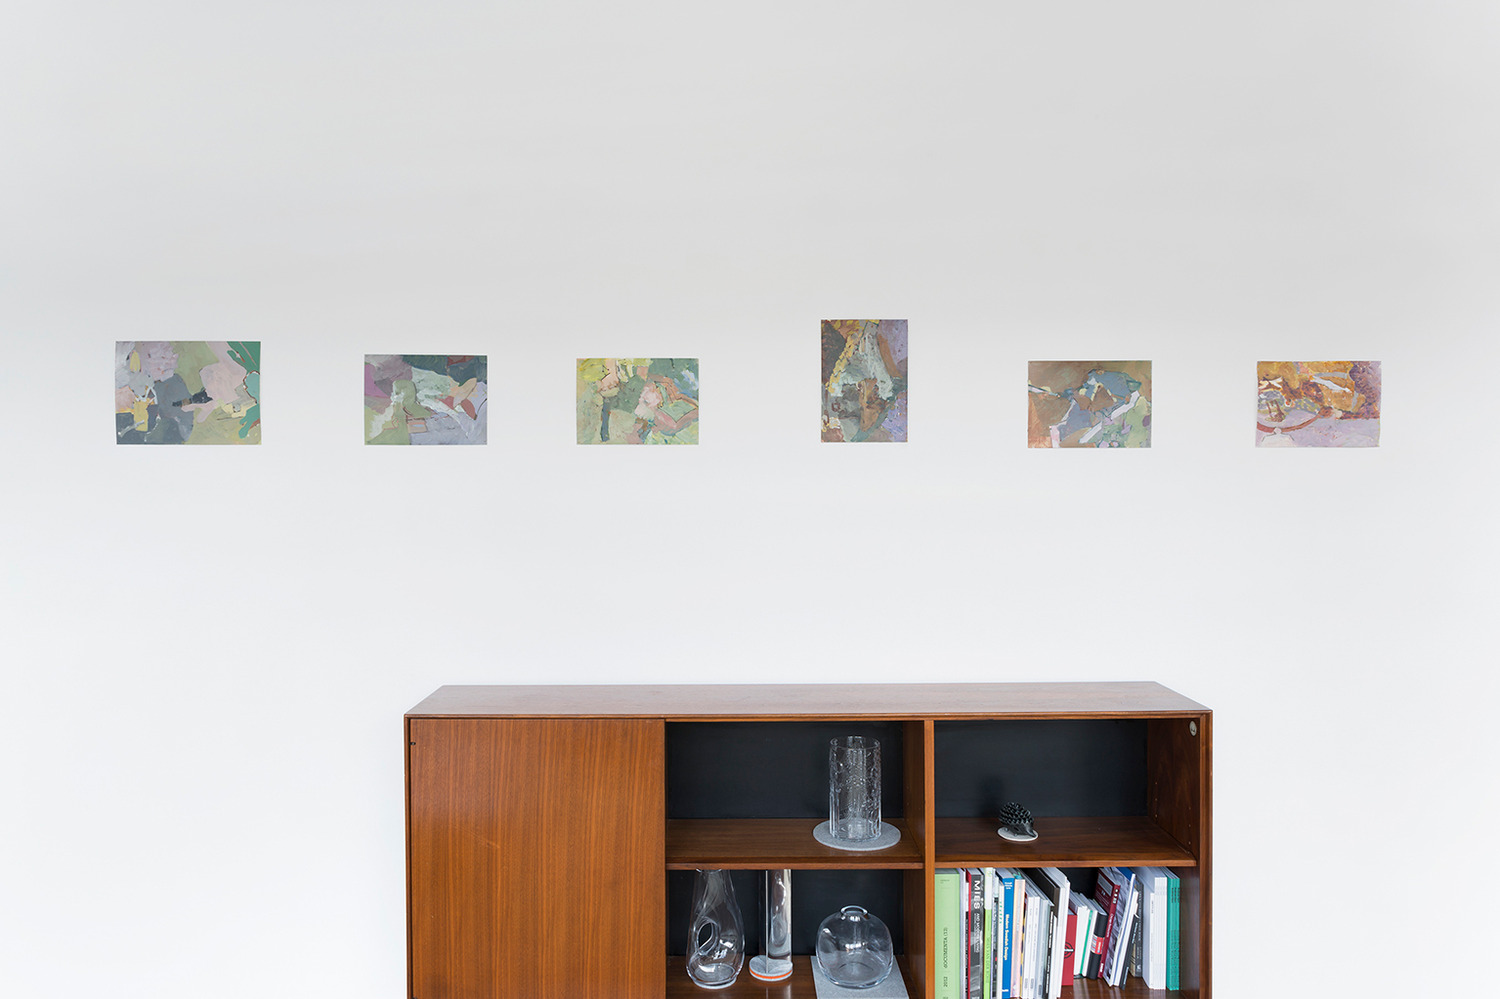 Installation view, Shane Campbell Gallery, Lincoln Park, Chicago, 2014